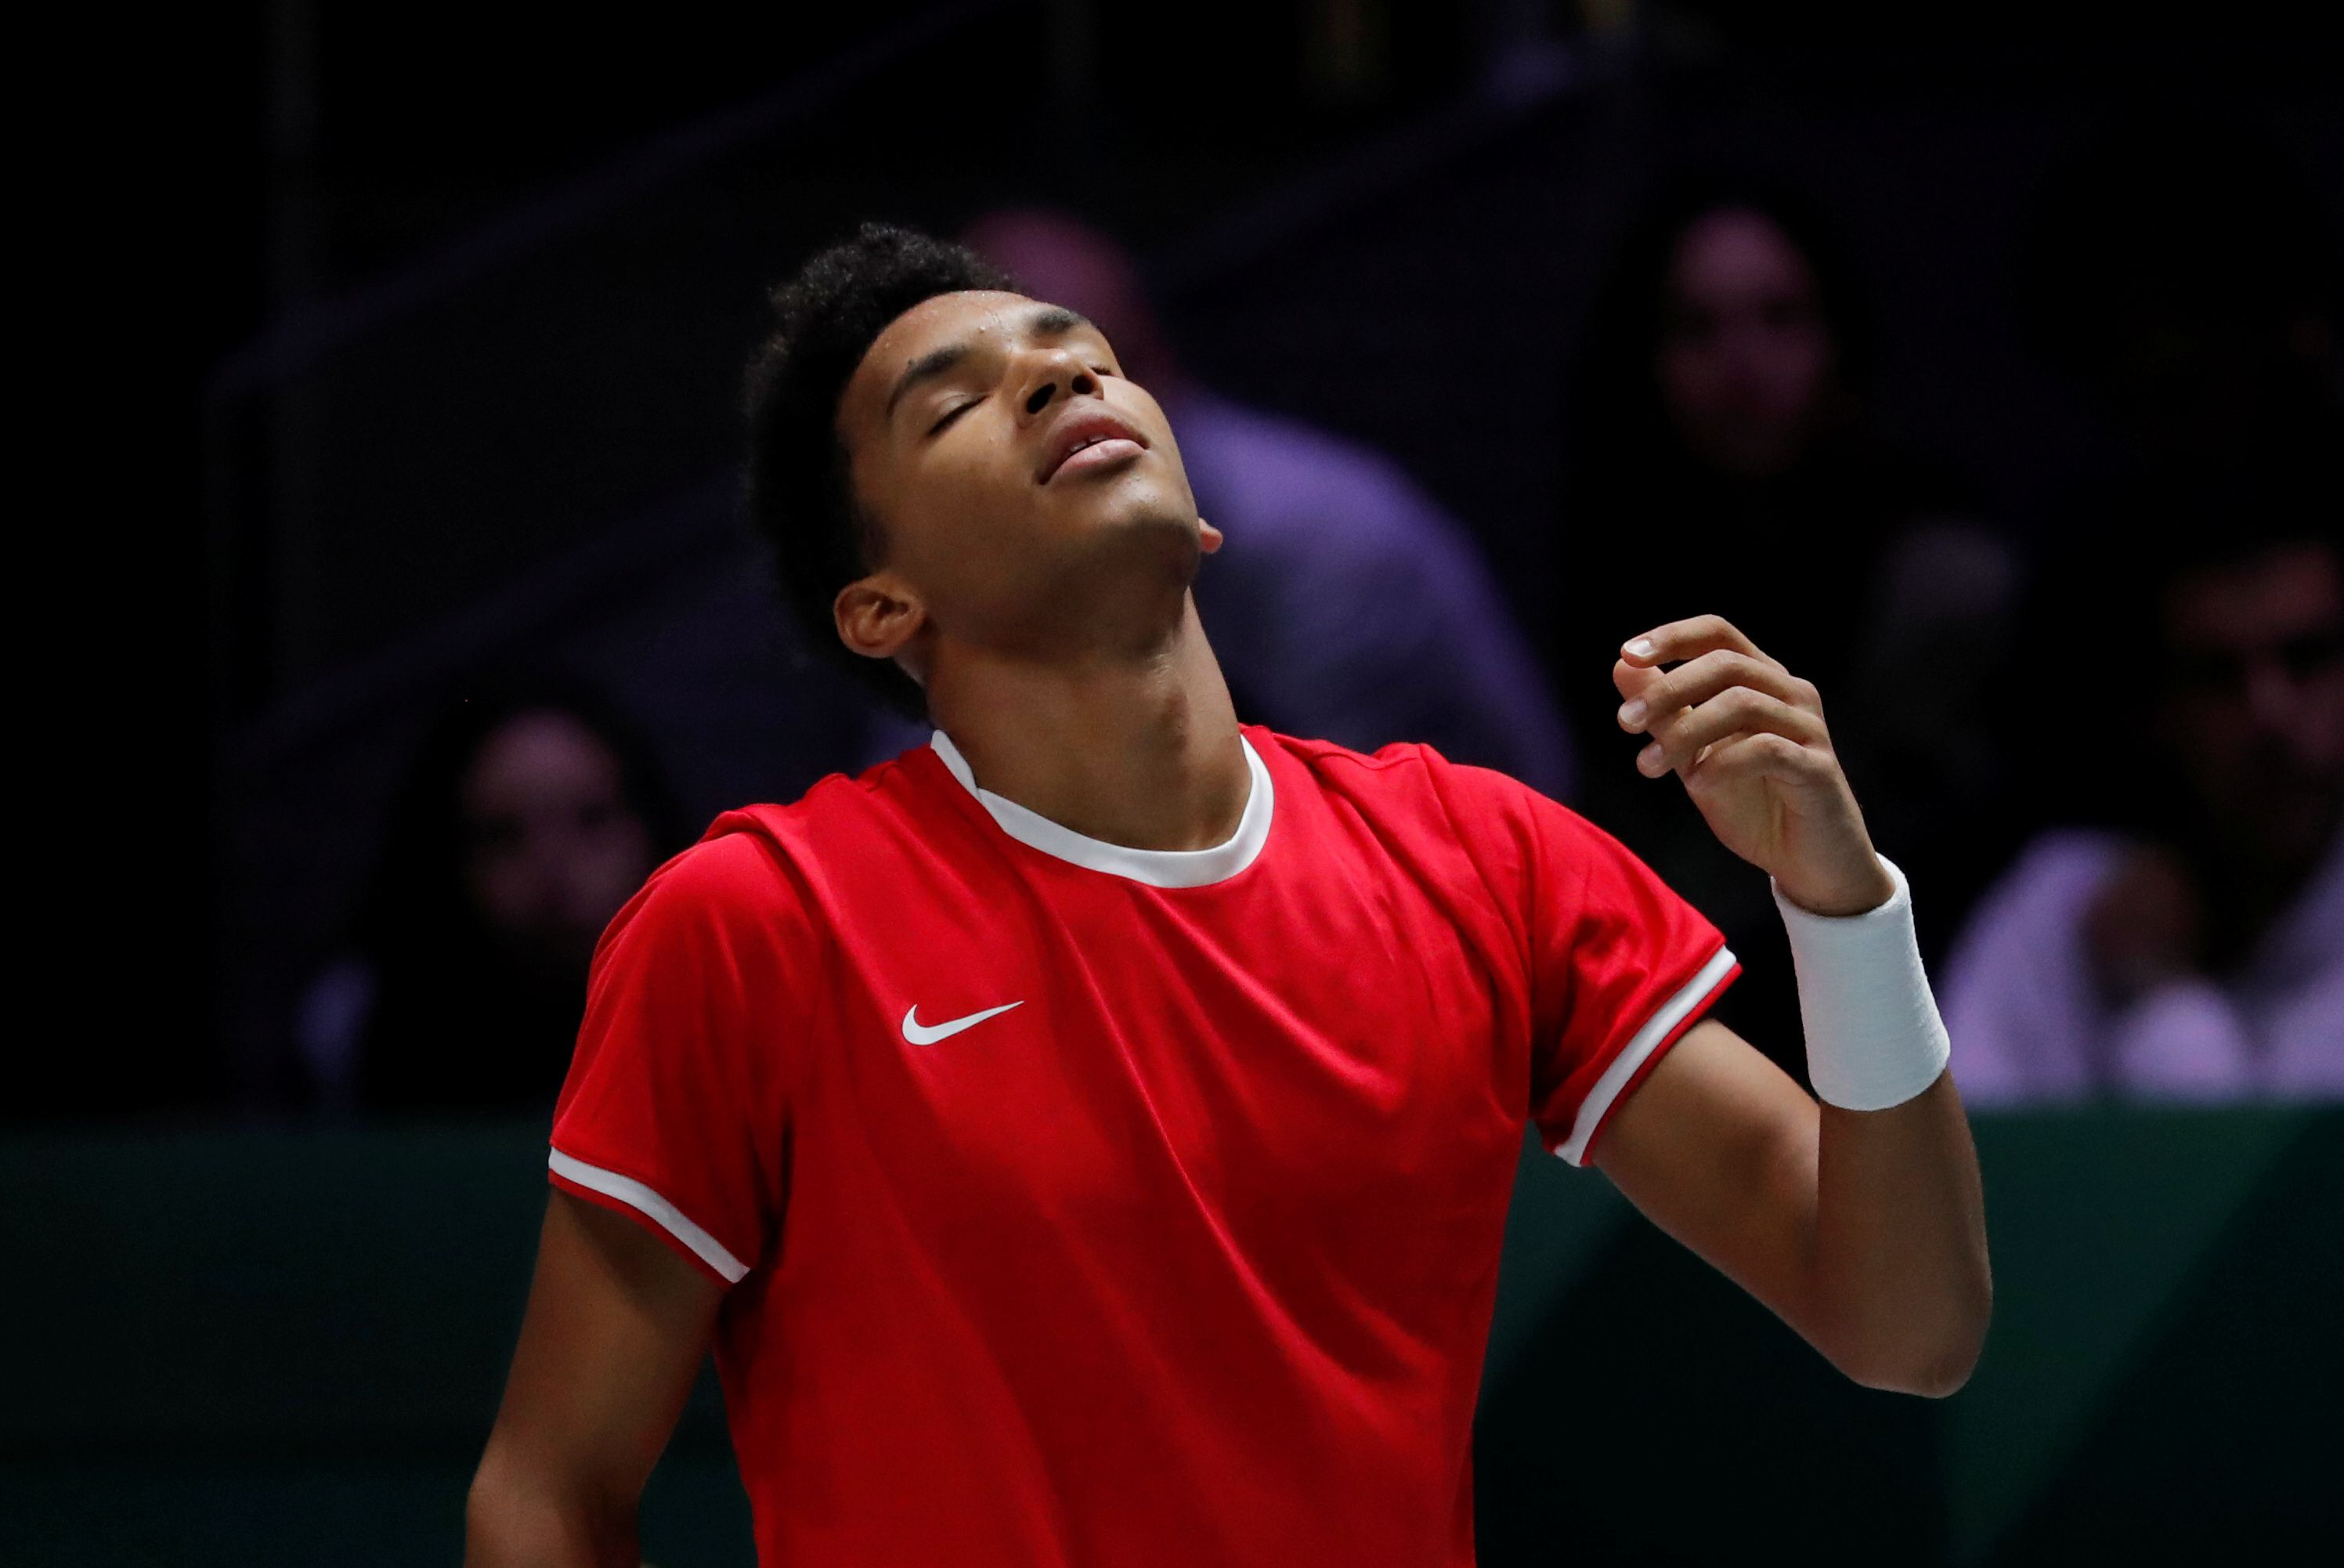 Tennis - Davis Cup Finals - Final - Caja Magica, Madrid, Spain - November 24, 2019   Canada's Felix Auger-Aliassime reacts during his match against Spain's Roberto Bautista Agut   REUTERS/Susana Vera